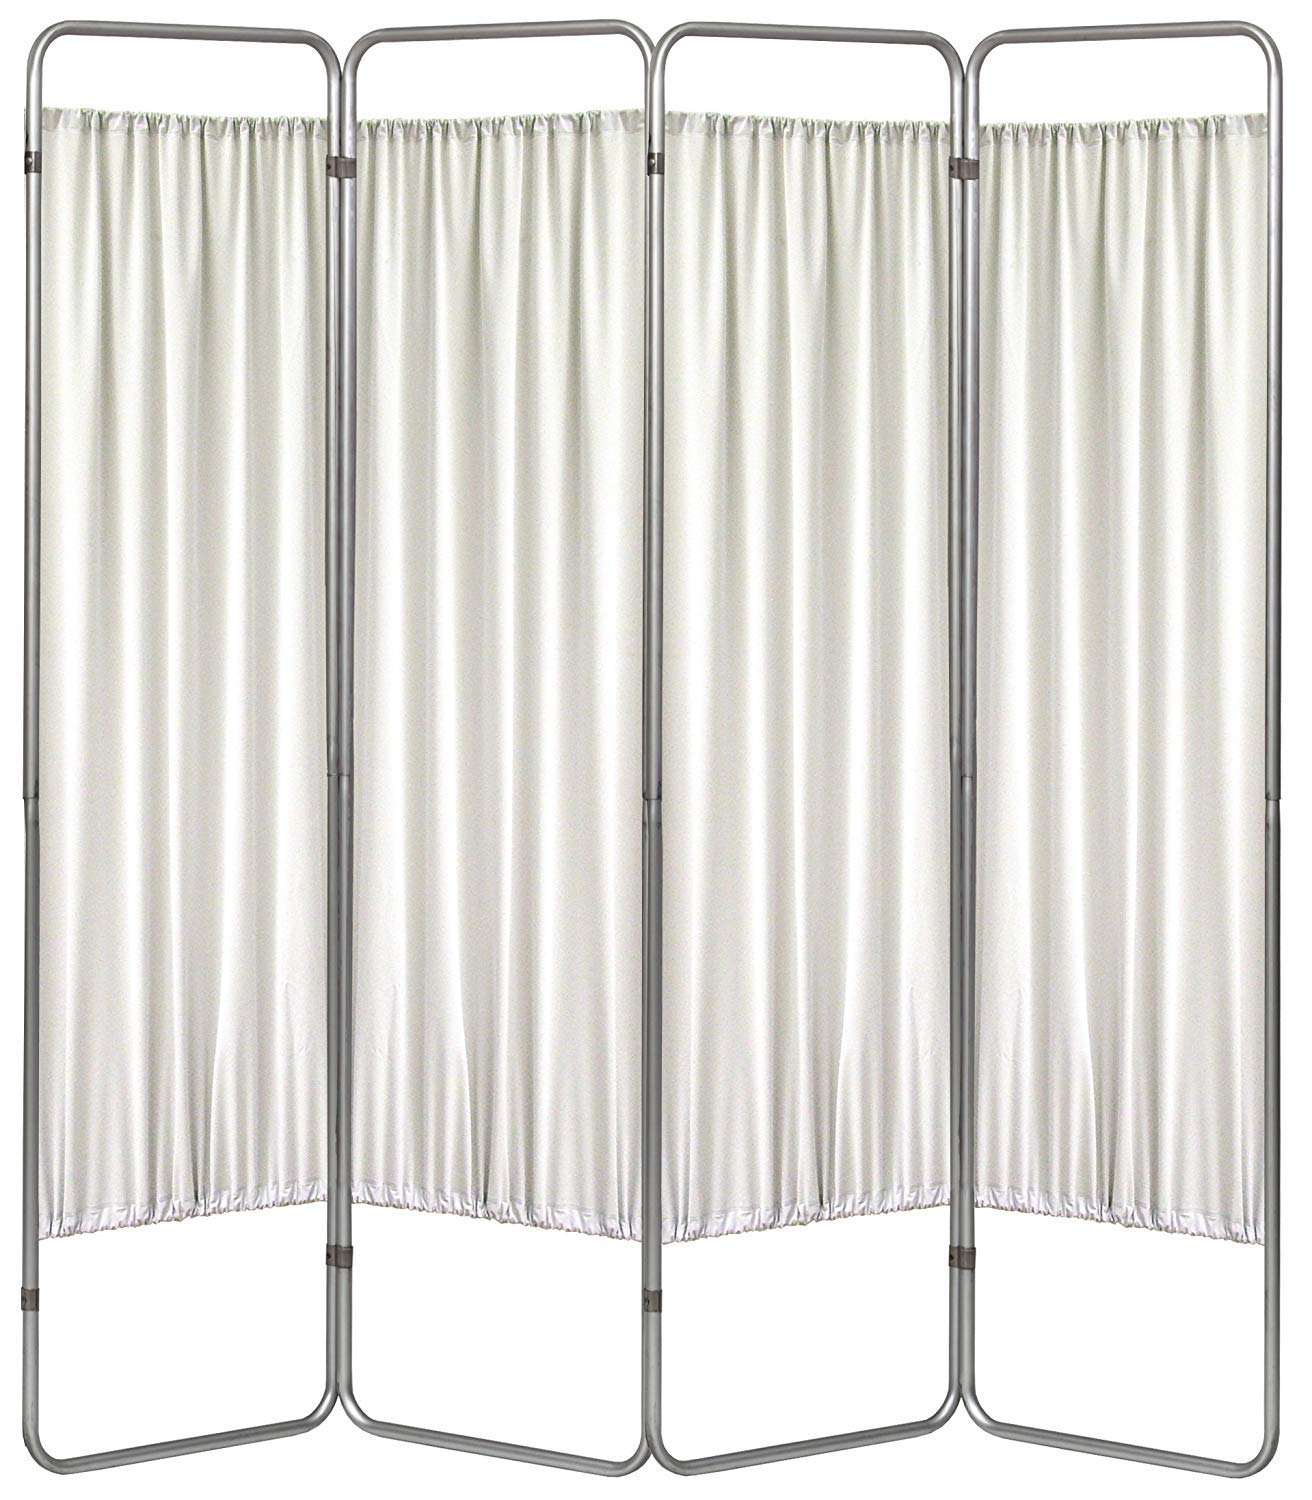 Omnimed 153094-FR 4 Panel Medical Privacy Screen with Frost Panels